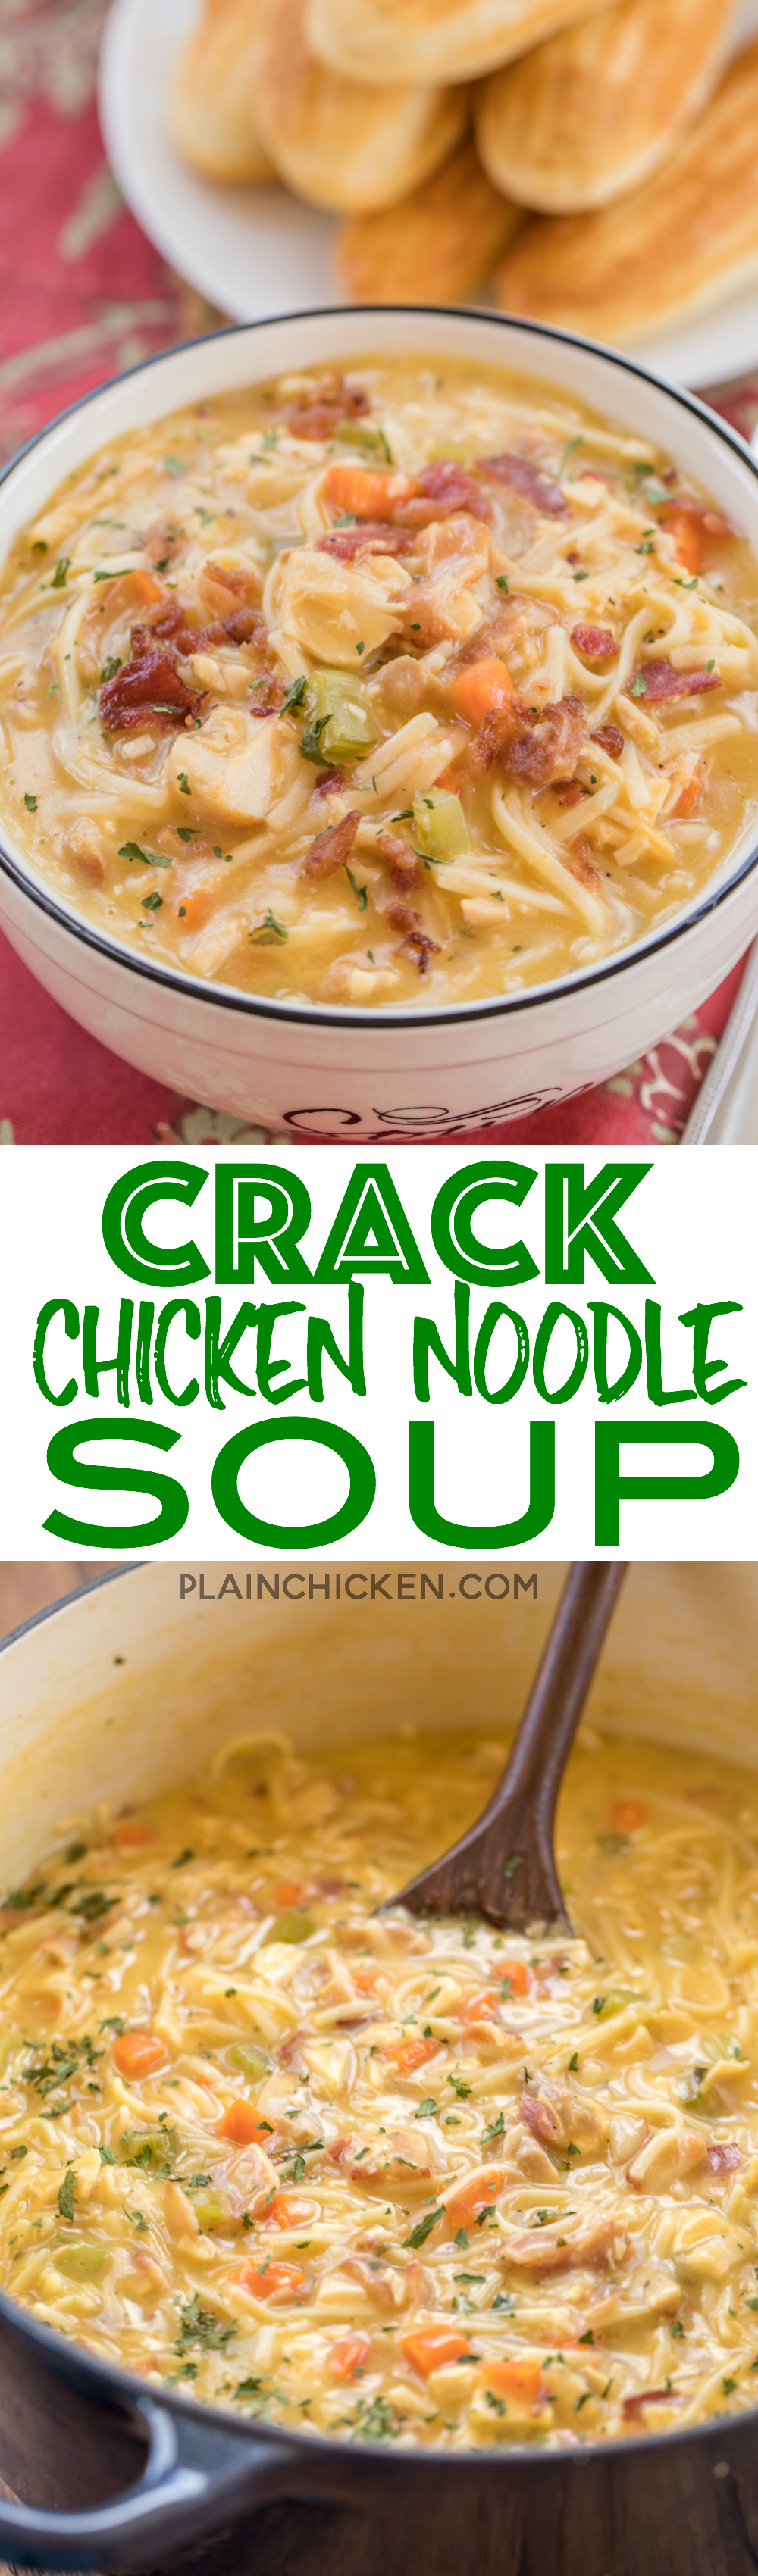 crack chicken noodle soup - this soup should come with a warning